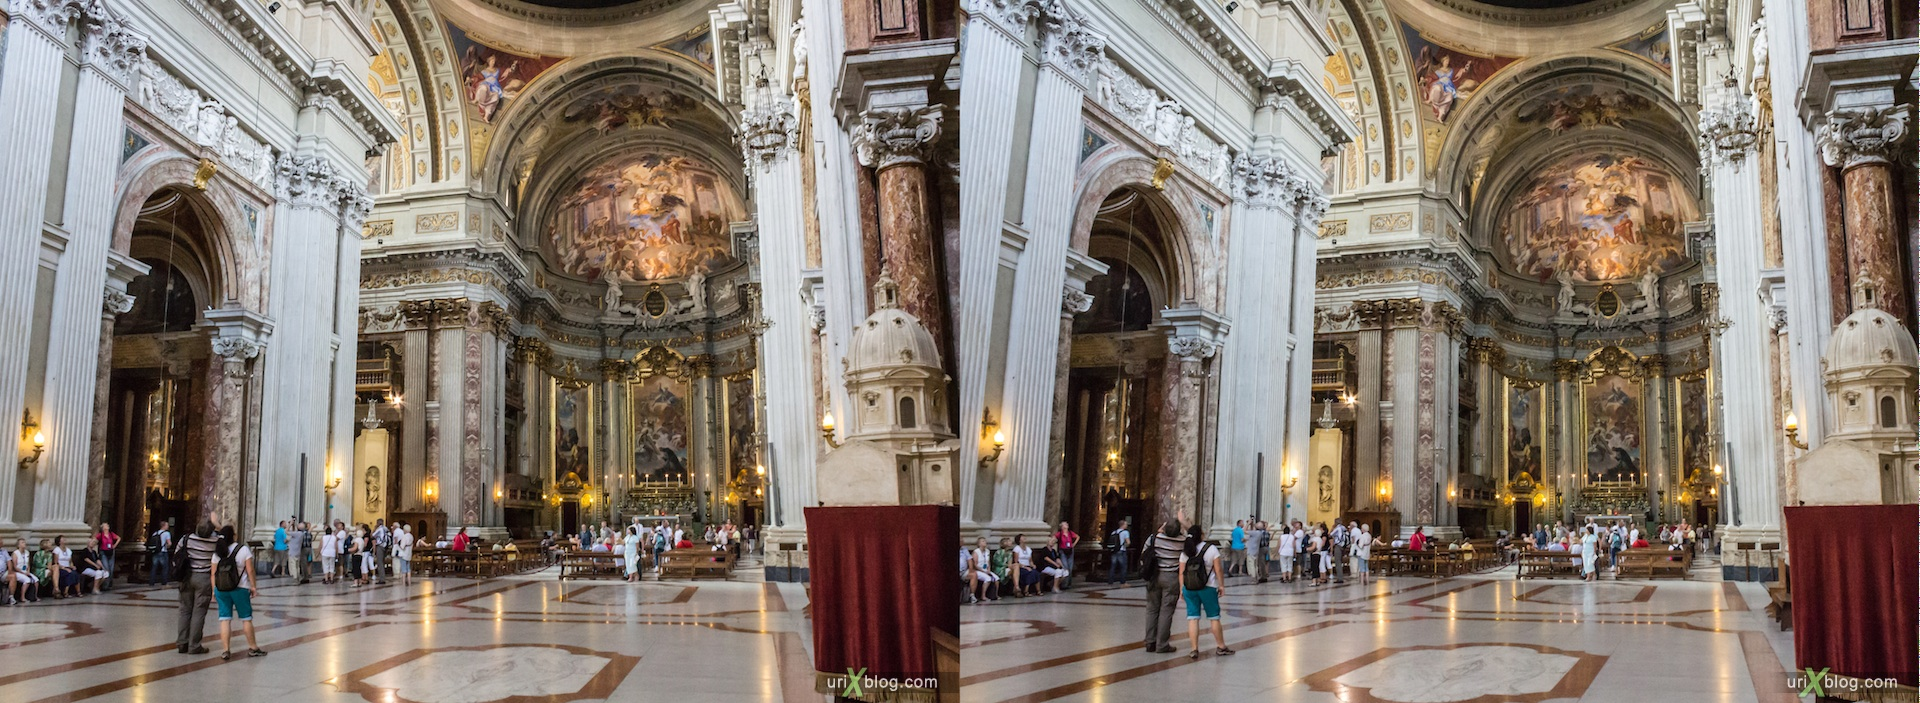 2012, church of Sant'Ignazio, Rome, Italy, cathedral, monastery, Christianity, Catholicism, 3D, stereo pair, cross-eyed, crossview, cross view stereo pair